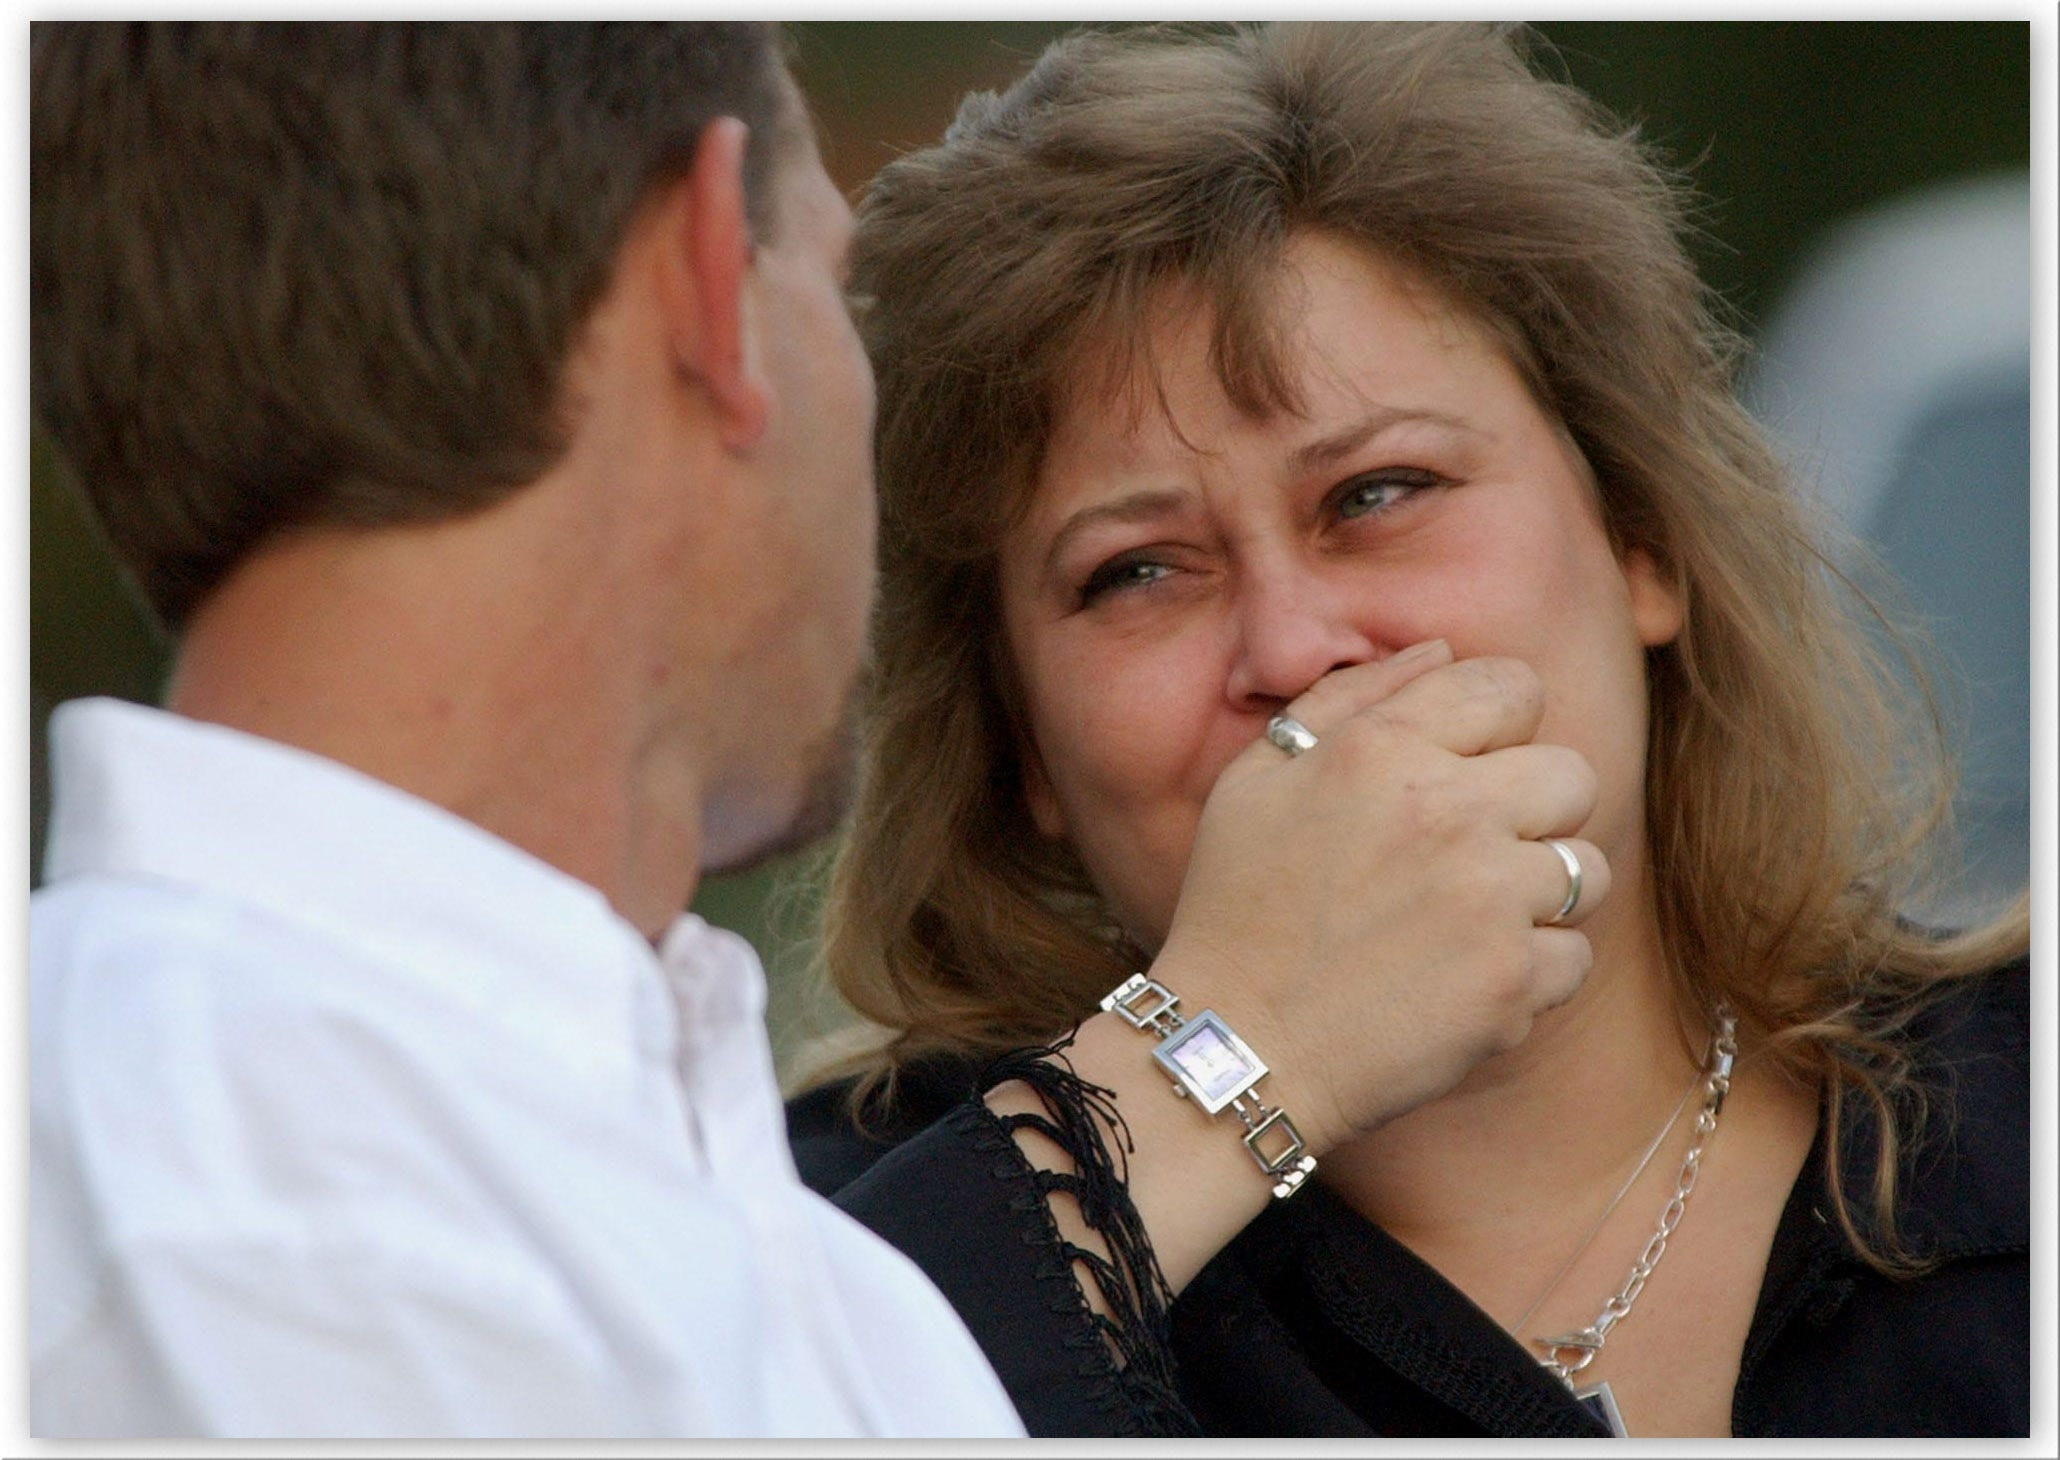 Susan Schorpen, right, mother of Carlie Brucia, cries as her husband Steve Kansler, Carlie's stepfather, comforts her during a memorial service for the 11-year-old Feb. 10, 2004 outside the Central Church of Christ in Sarasota, Fla.  Carlie's body was found behind the church.